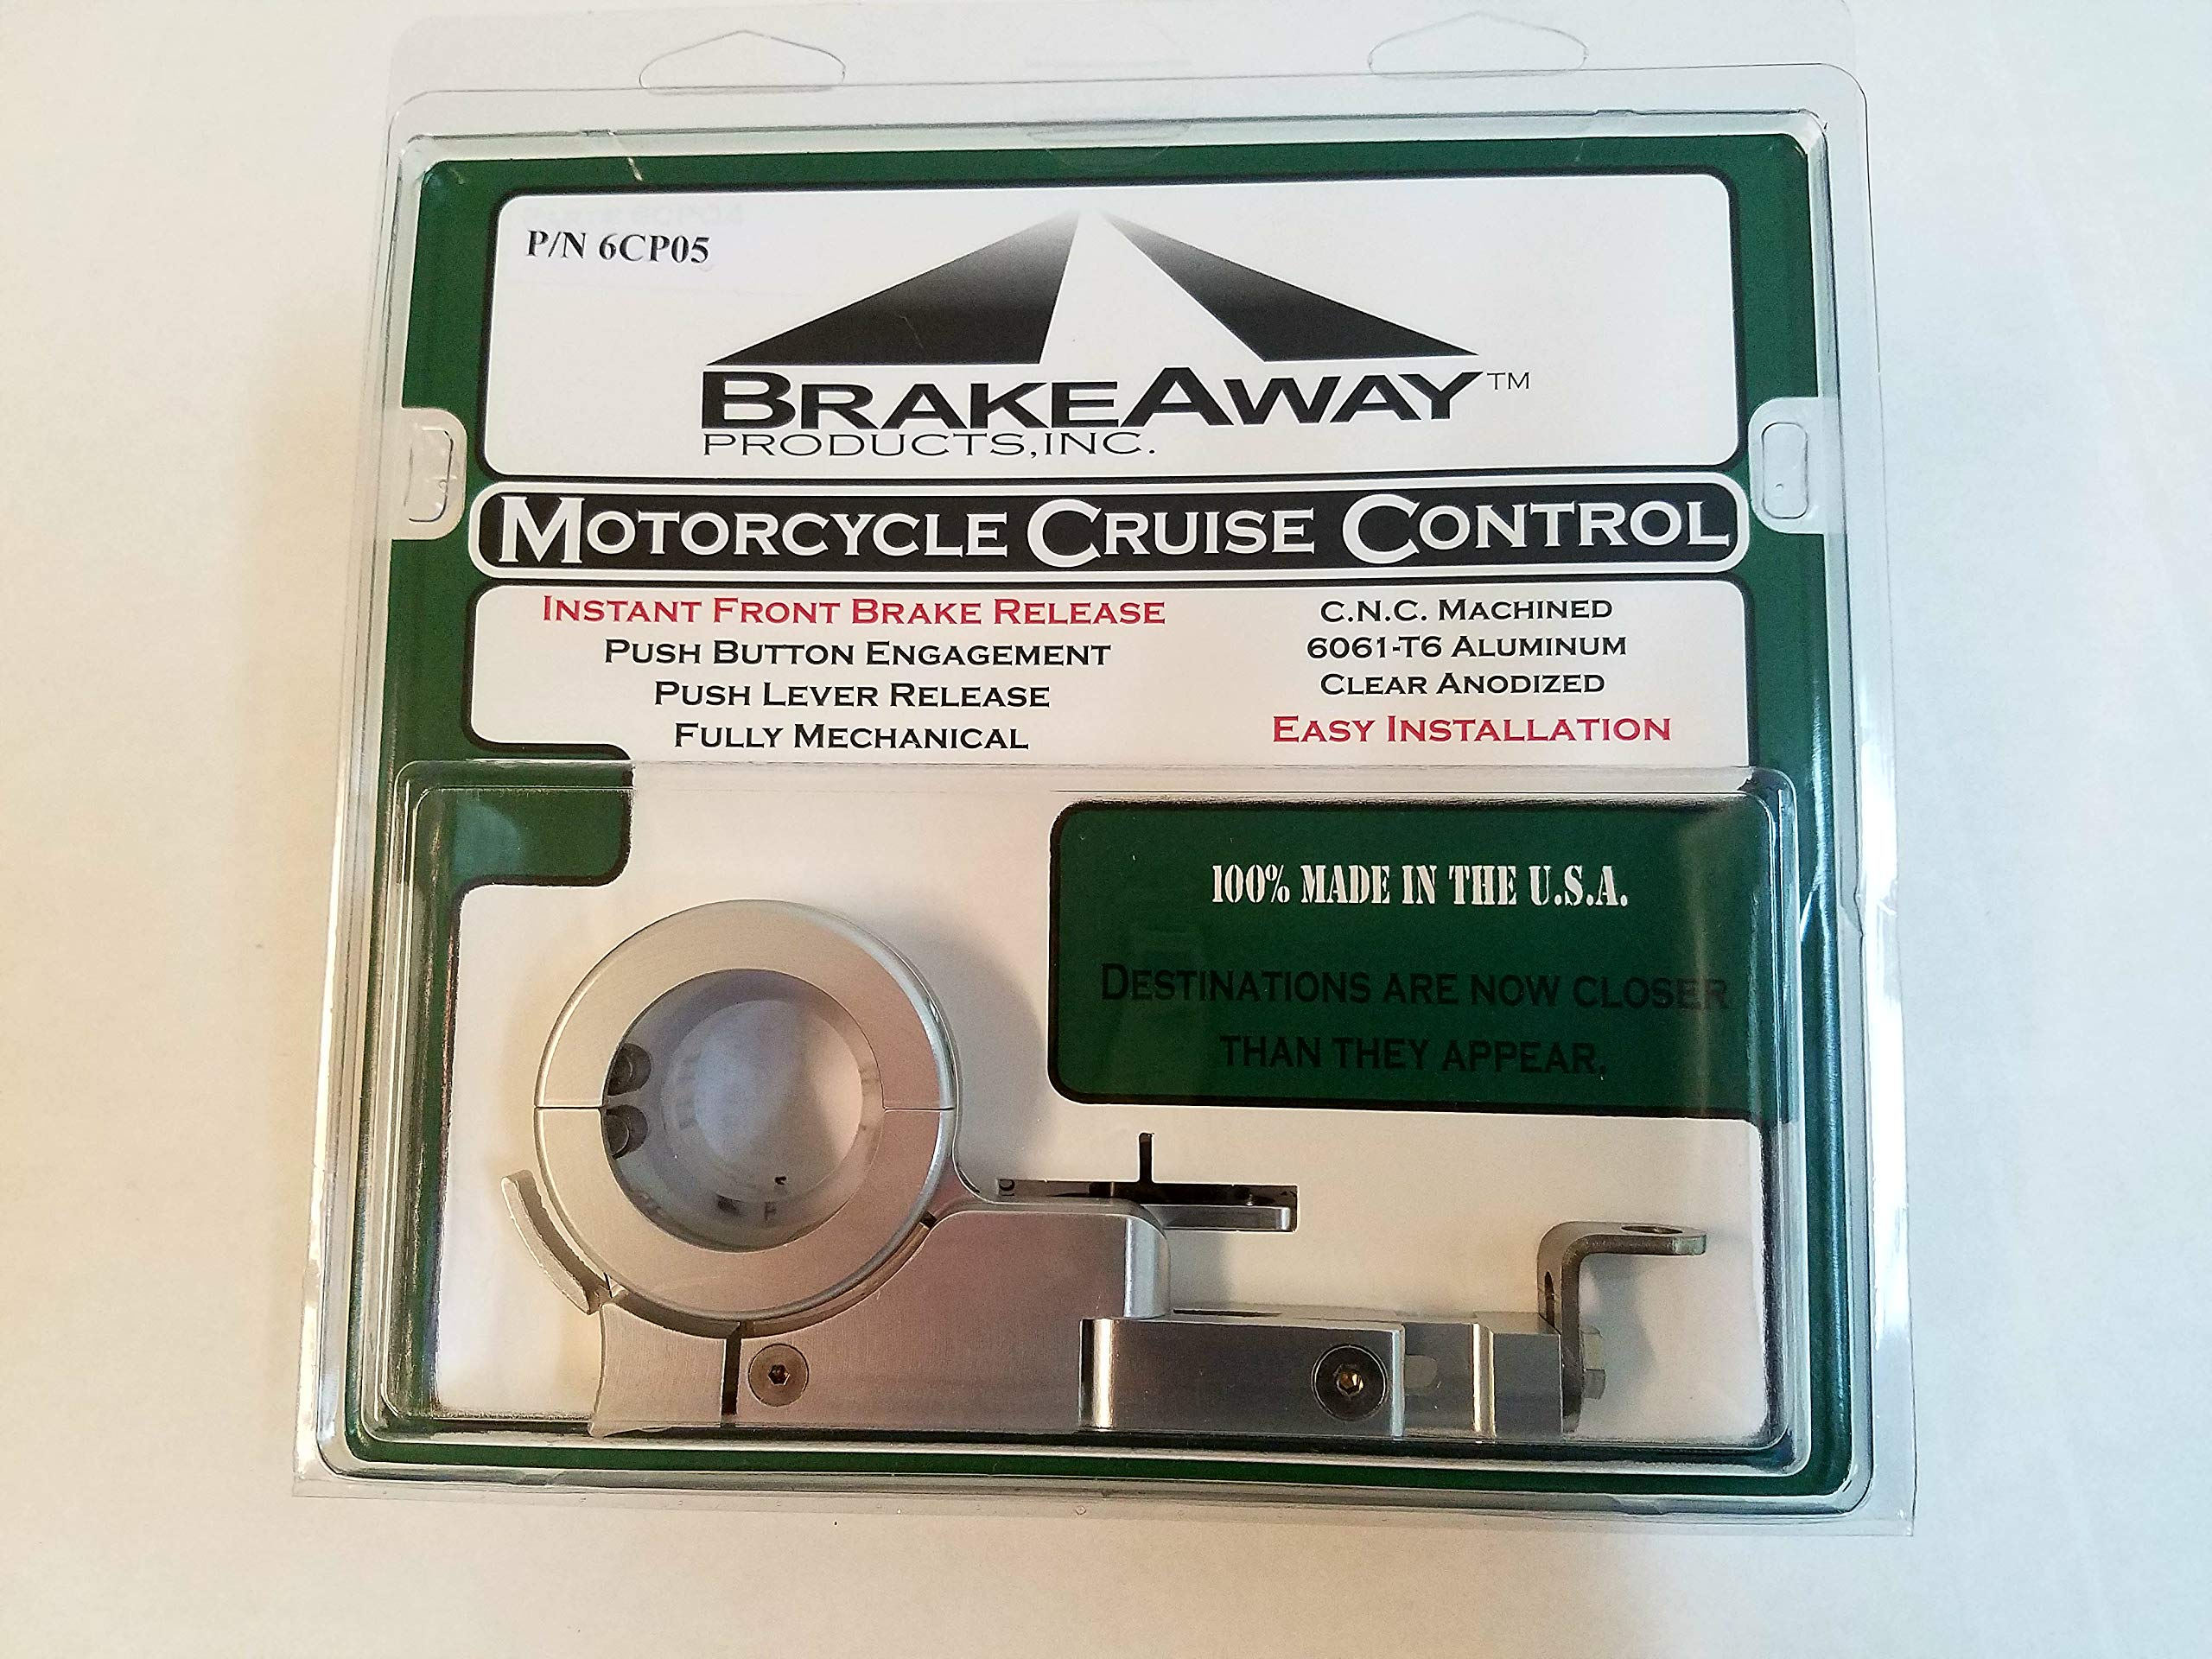 BrakeAway Motorcycle Cruise Control Throttle Lock 1996 and Newer Harley Davidson Motorcycles with Throttle Cables 6CP05 1.0'' Handlebar